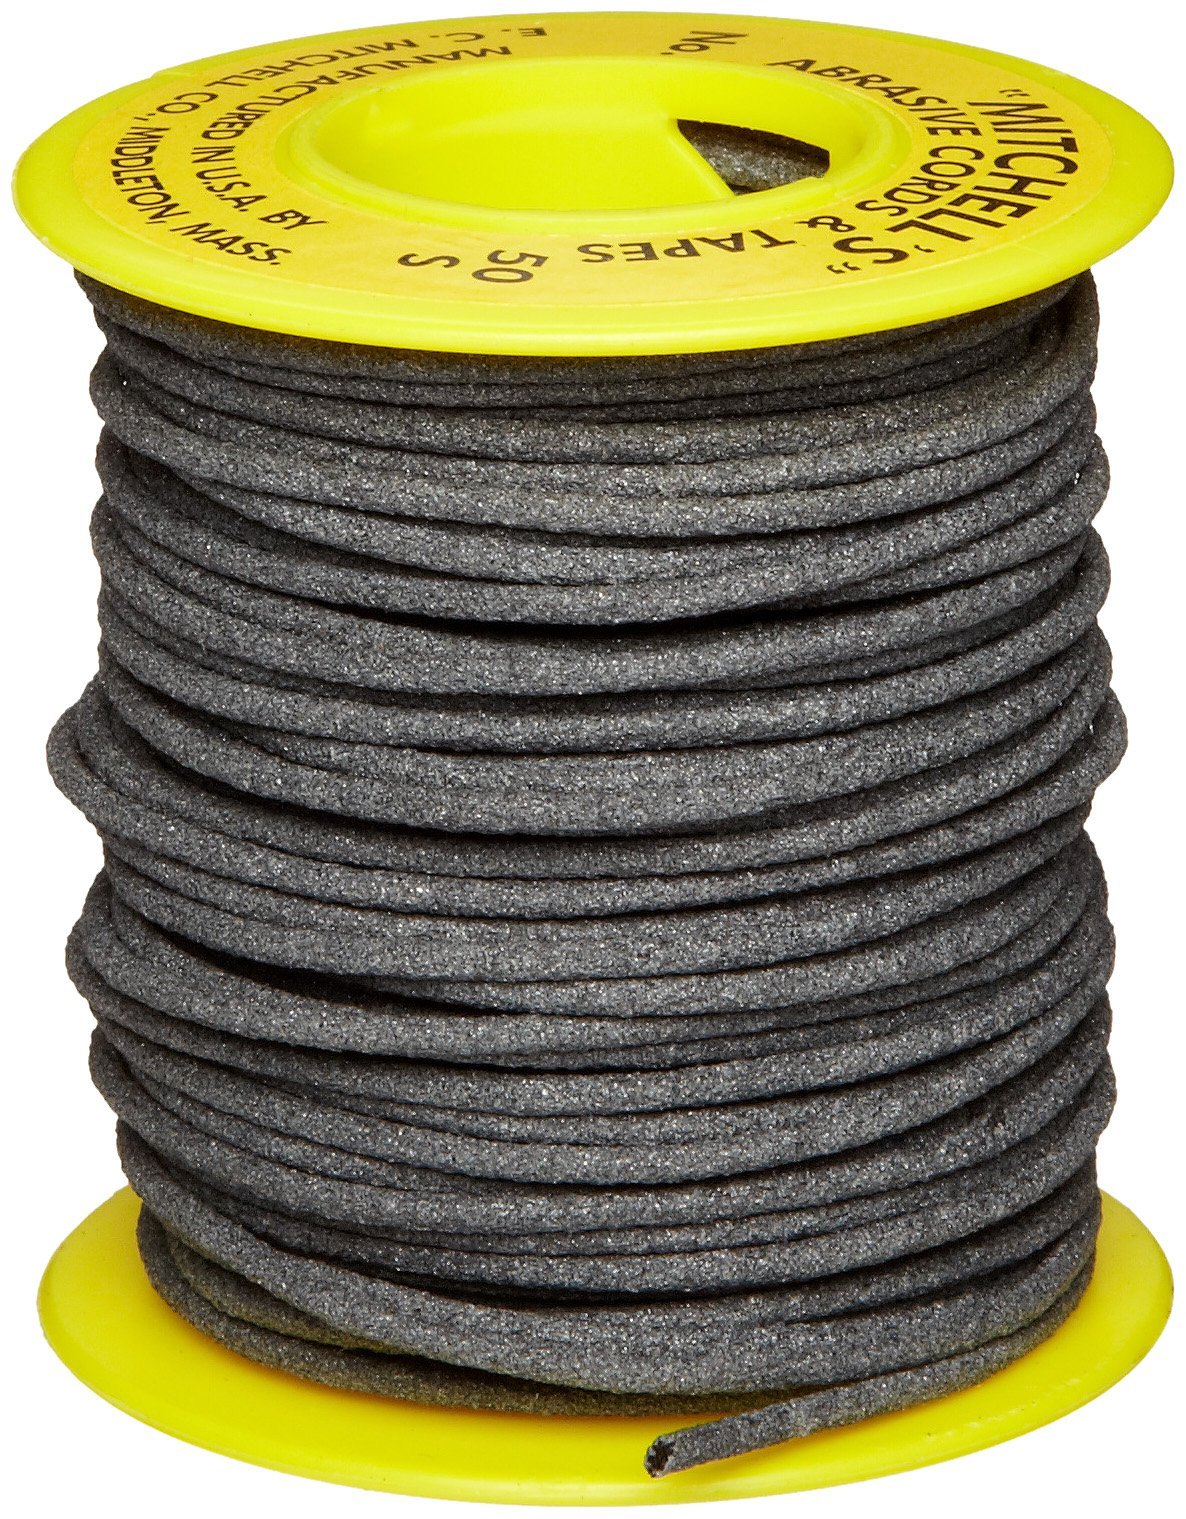 Mitchell Abrasives 50-S Round Abrasive Cord, Silicon Carbide 180 Grit .070'' Diameter x 50 Feet by Mitchell Abrasives